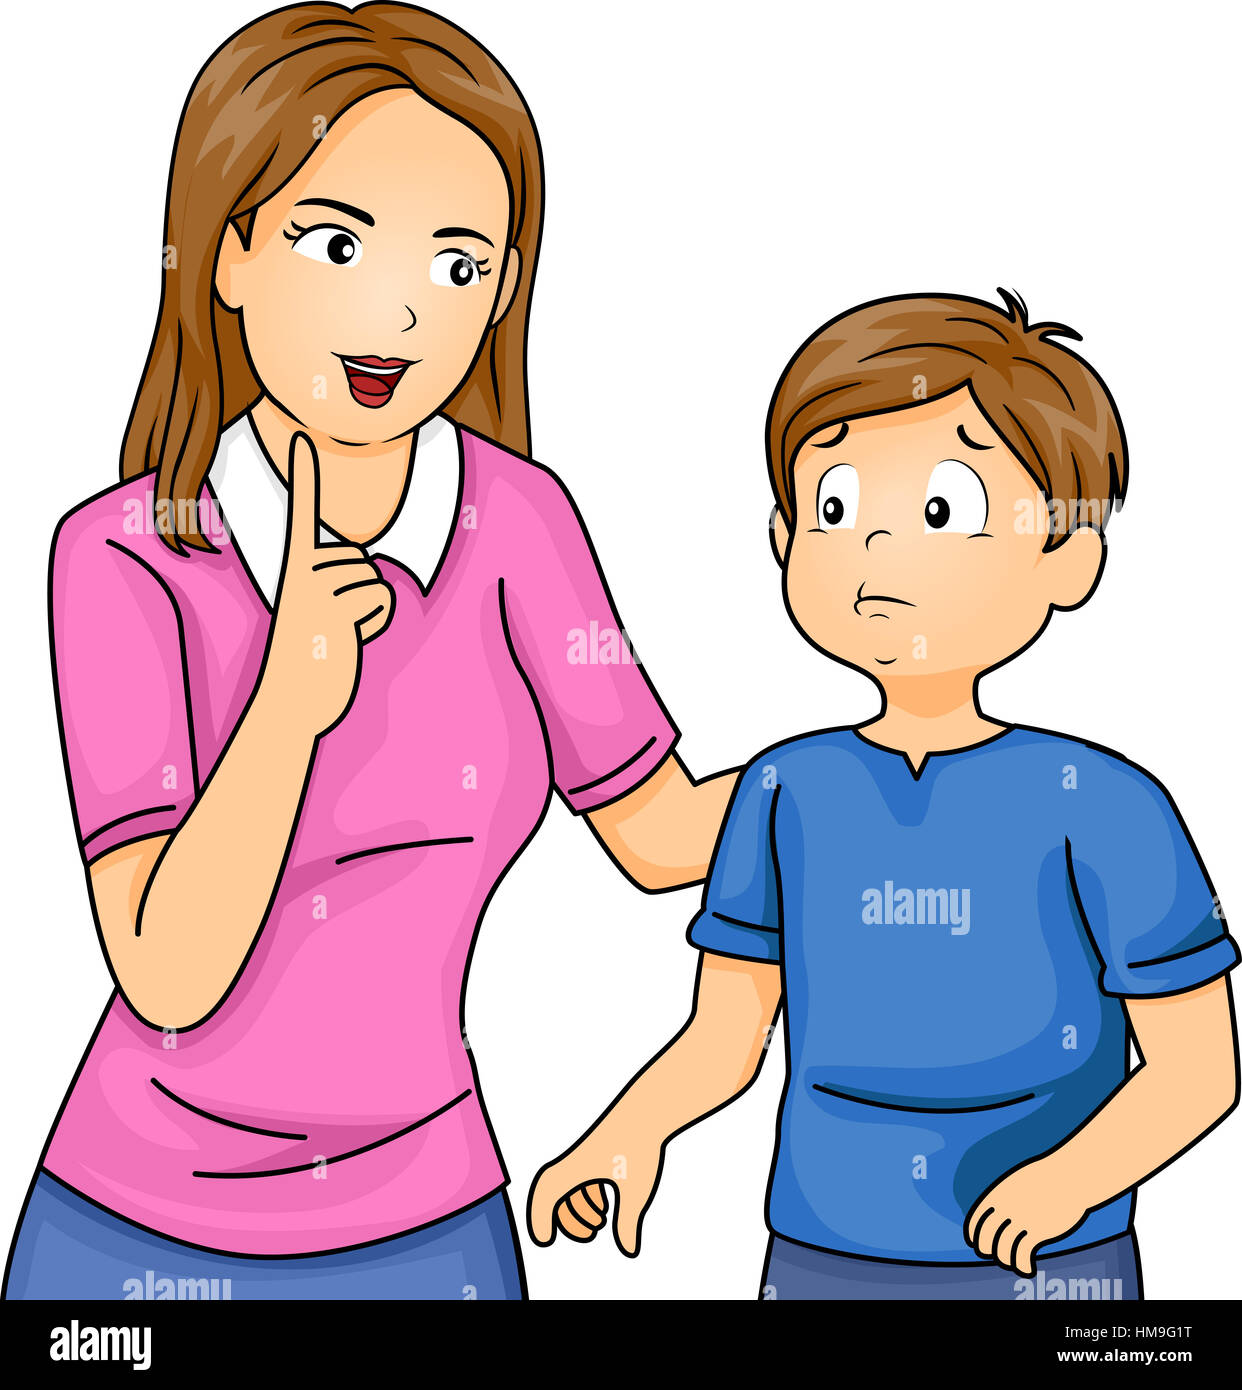 Illustration Of A Mother Scolding Her Son Stock Photo Alamy